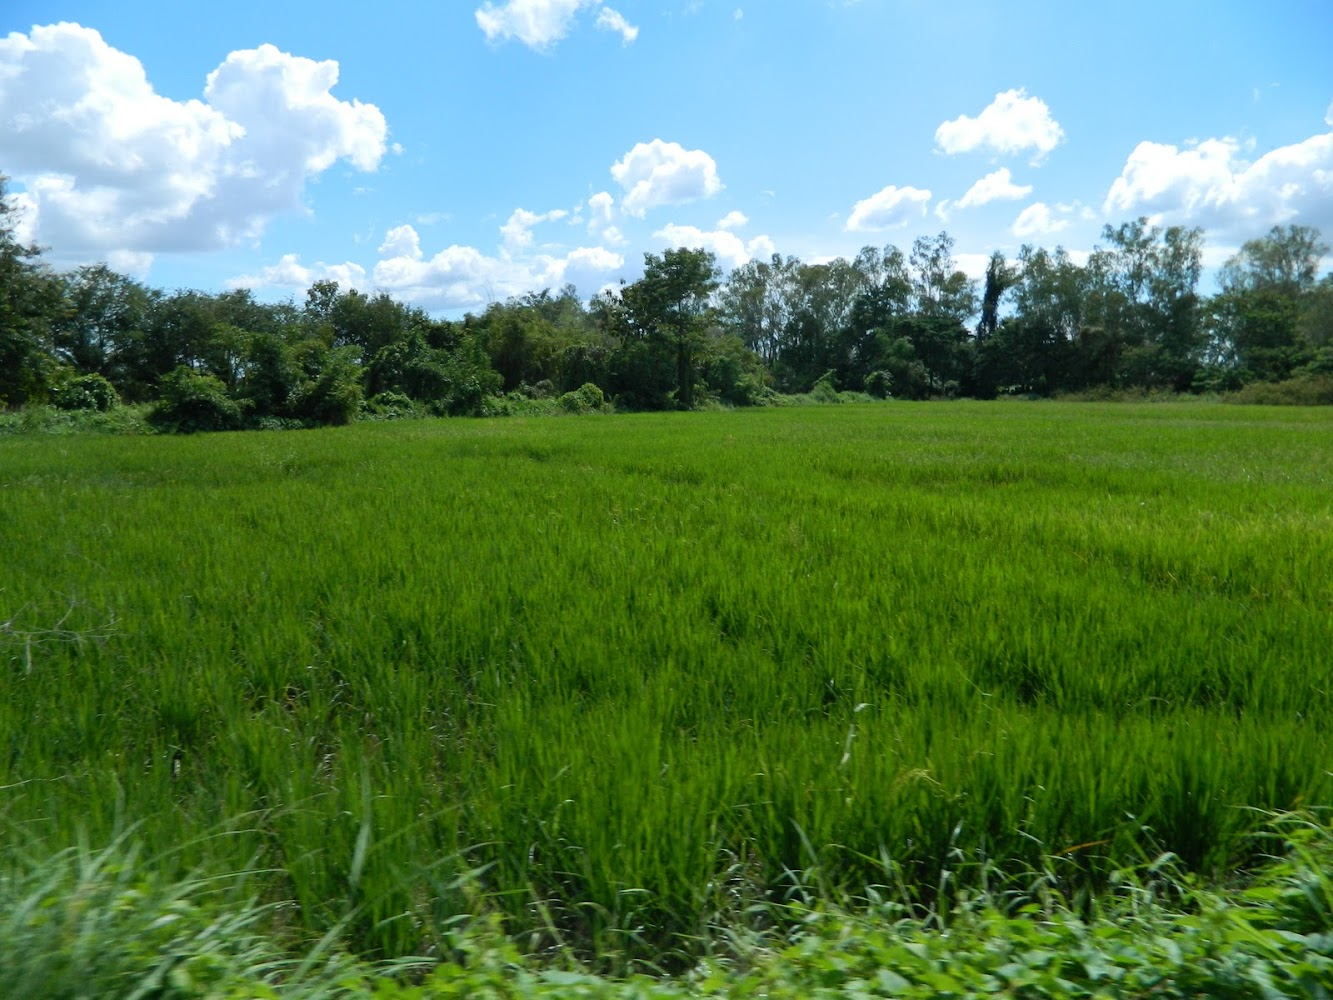 More Than a Rice Paddy